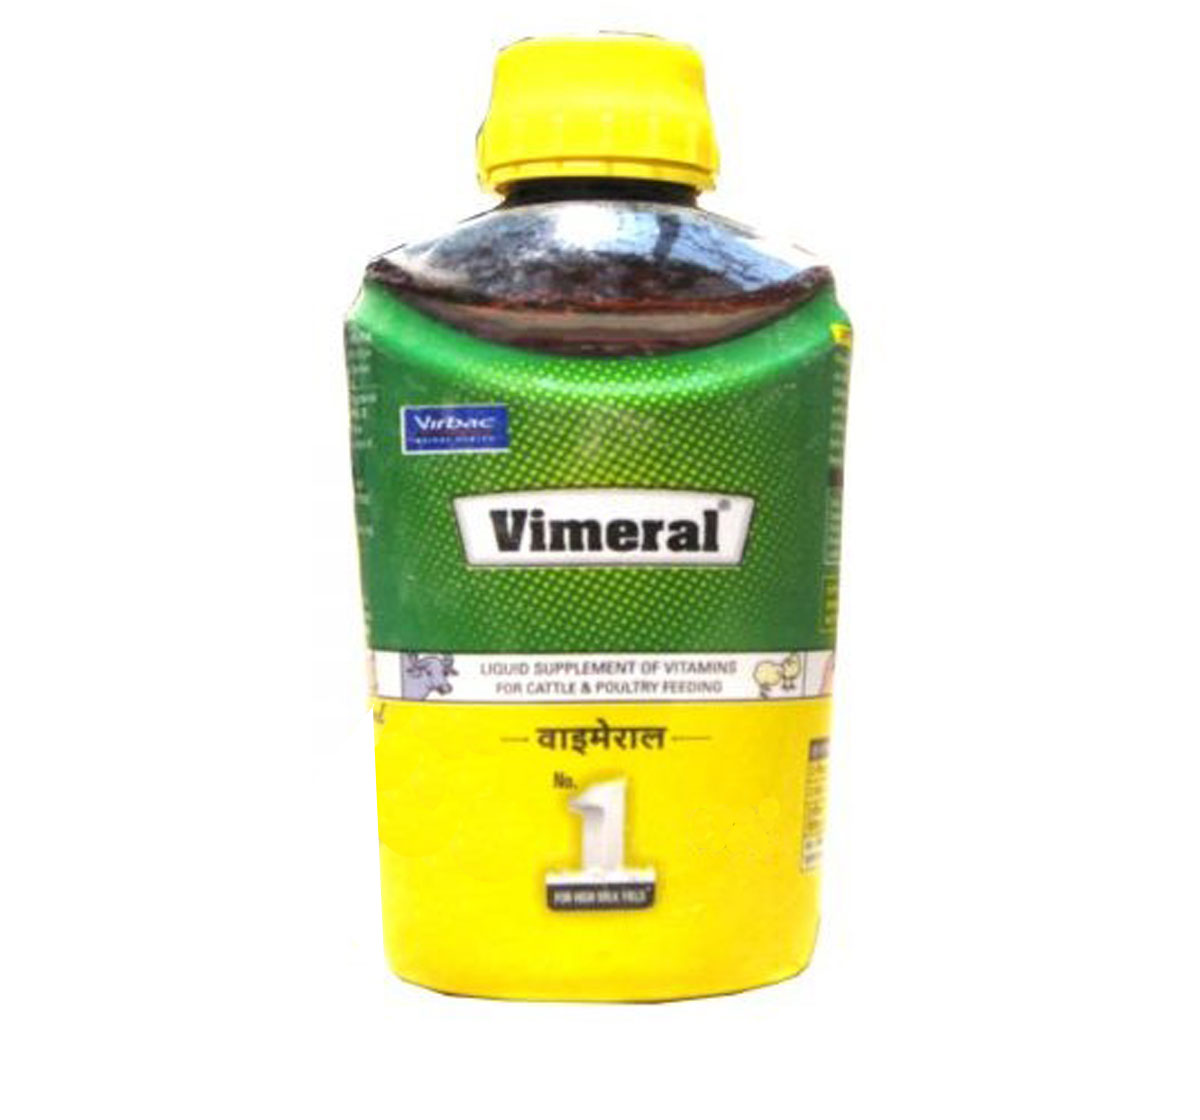 Virbac Vimral Multivitamin Supplement - 30 ml